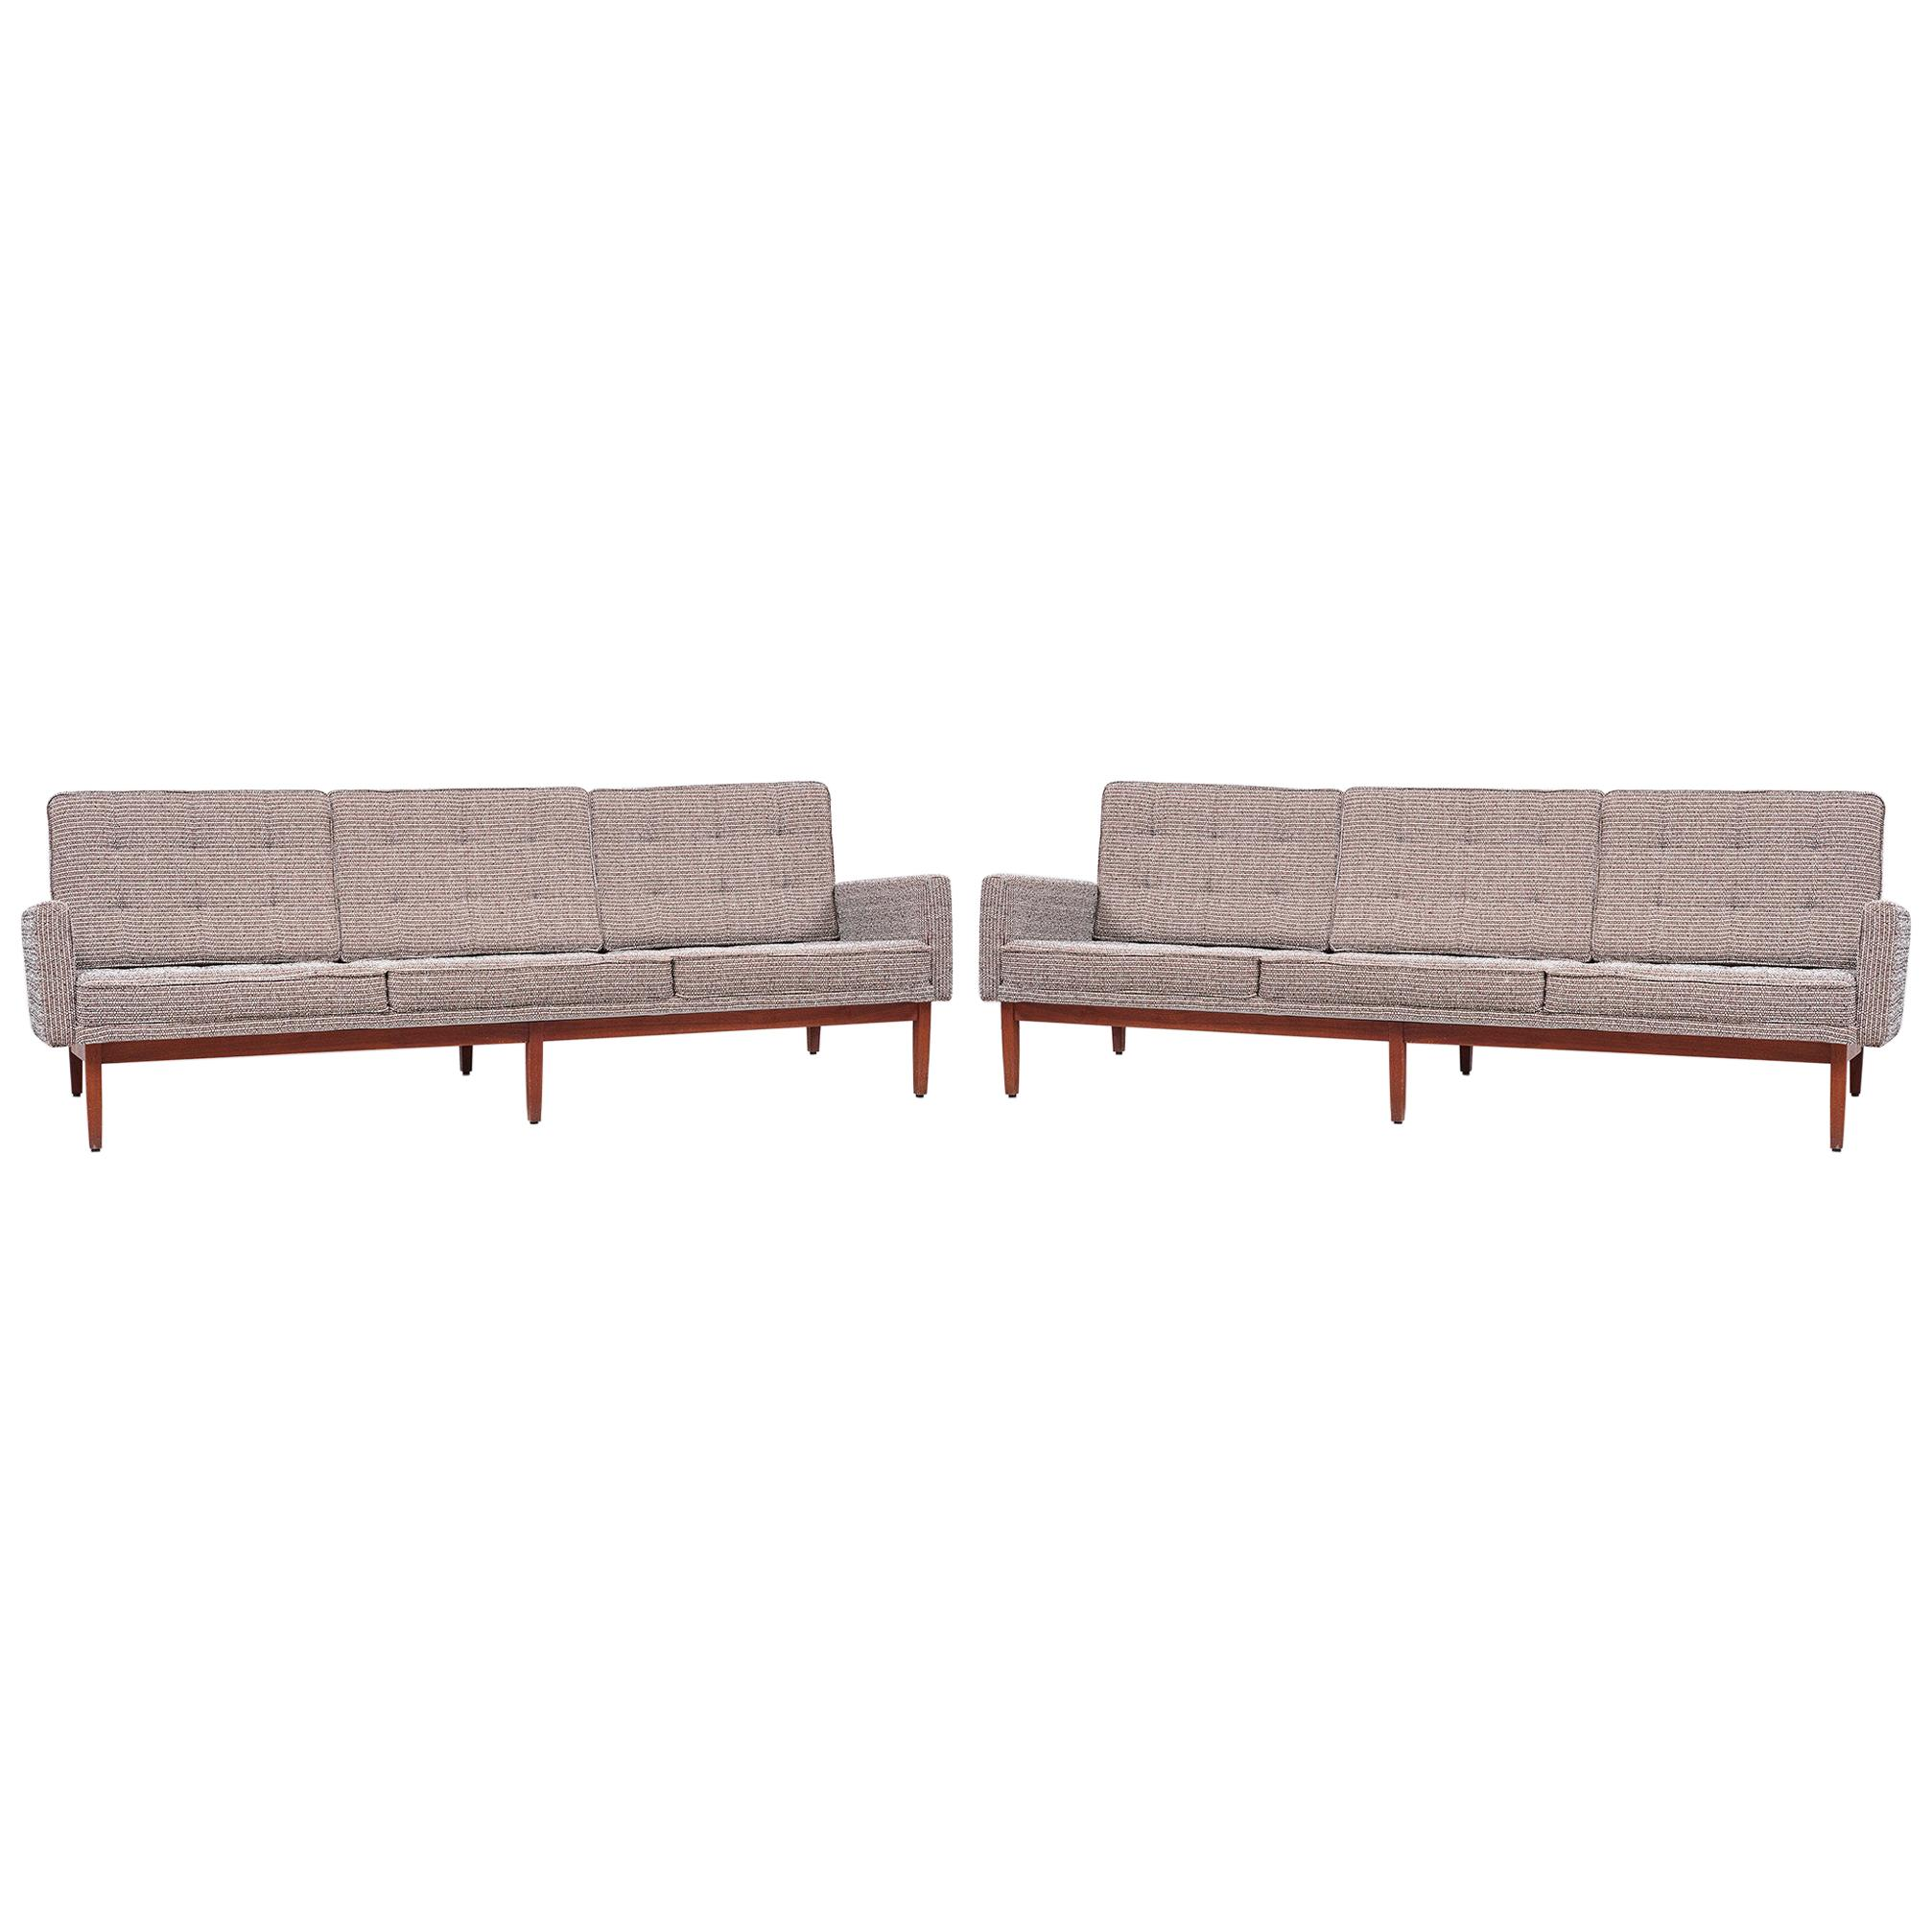 Pair of Florence Knoll 57W Sofas by Knoll Associates 1950s, US